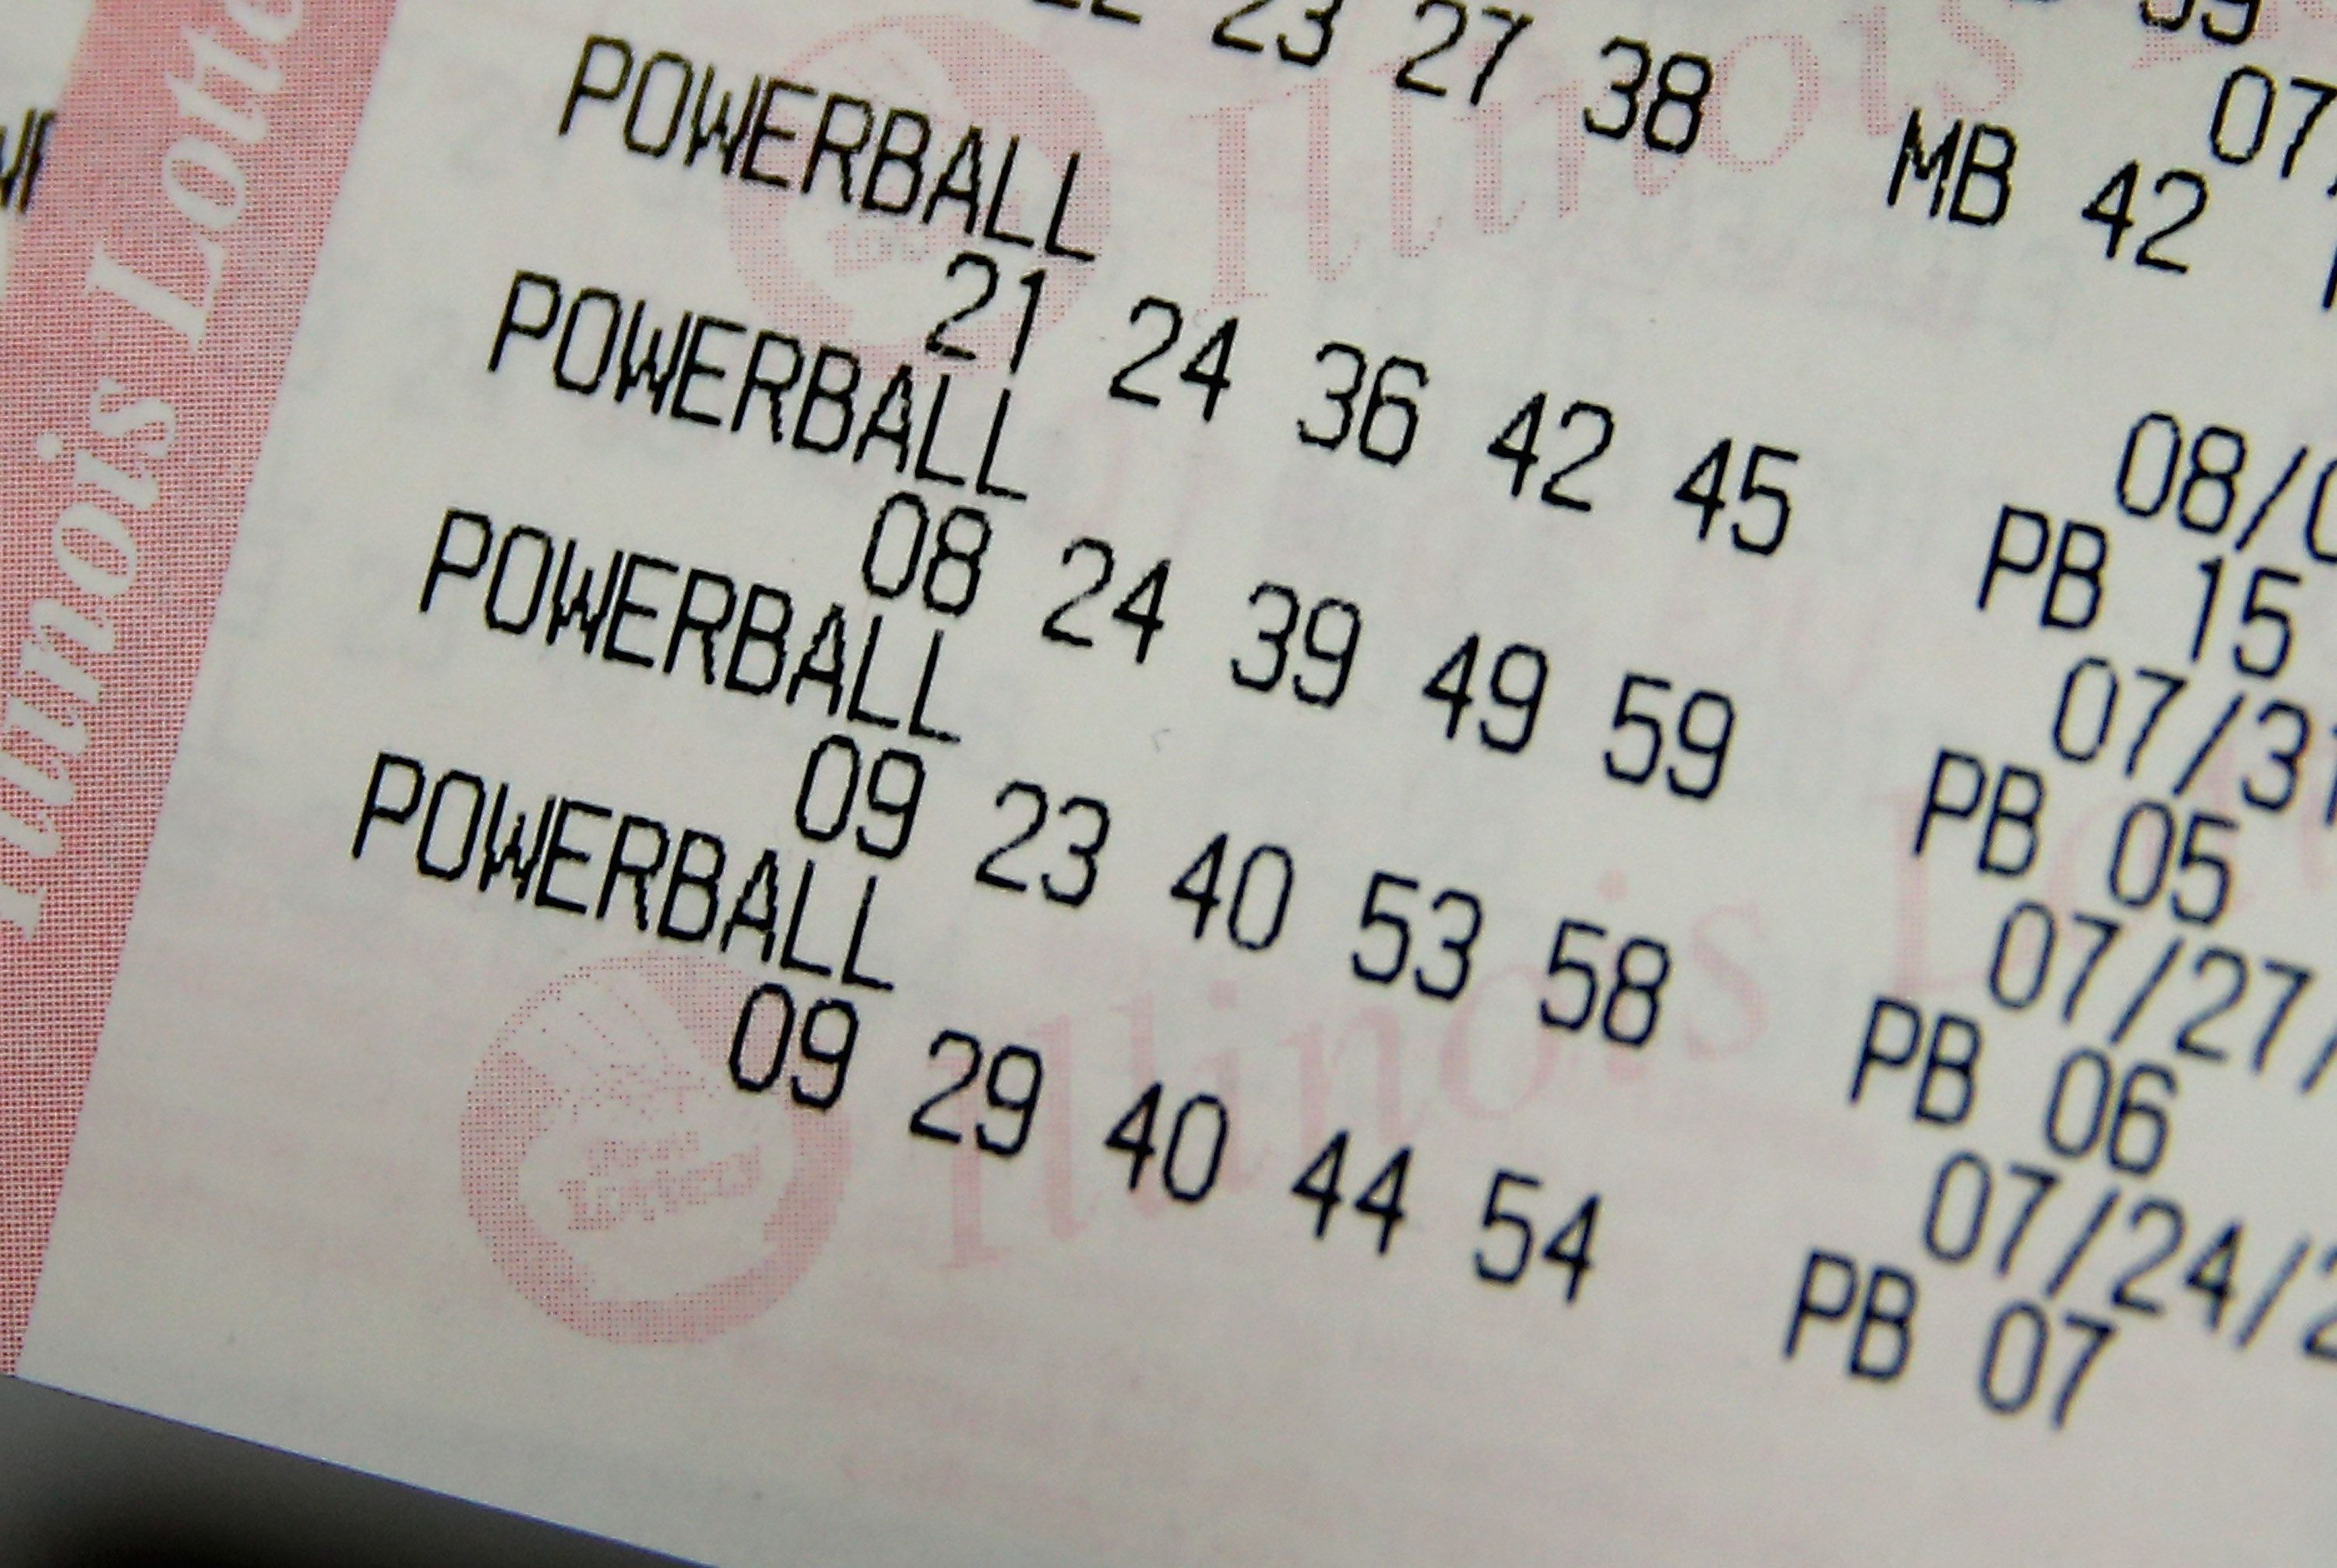 Winning a Jackpot: 8 Things to Do Before Claiming a Powerball Prize